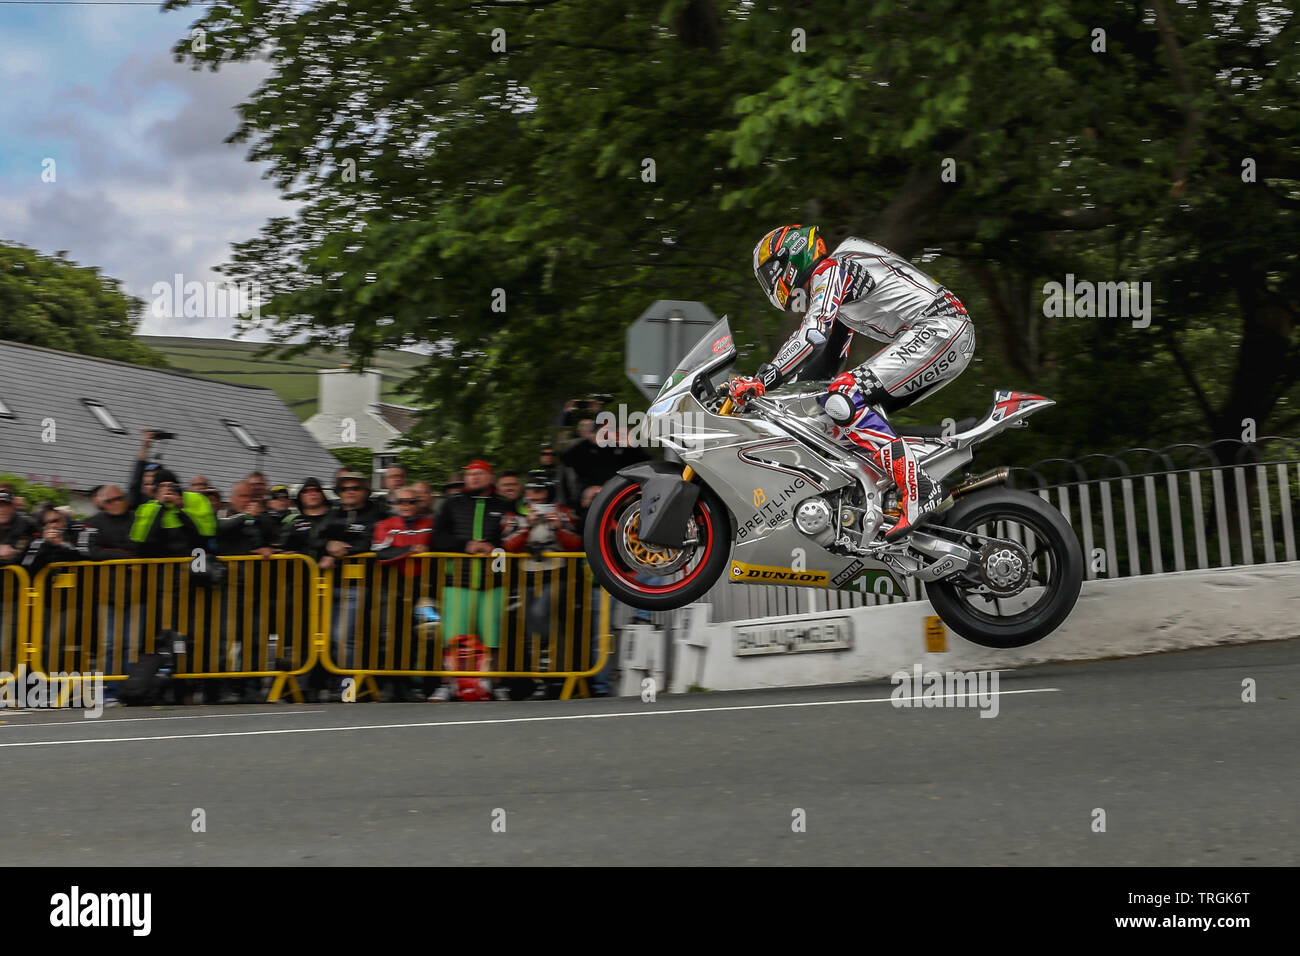 Peter Hickman (10) - Norton Motorcycles in action in the Bennetts Lightweight class qualifying session at the 2019 Isle of Man TT (Tourist Trophy) Rac - Stock Image